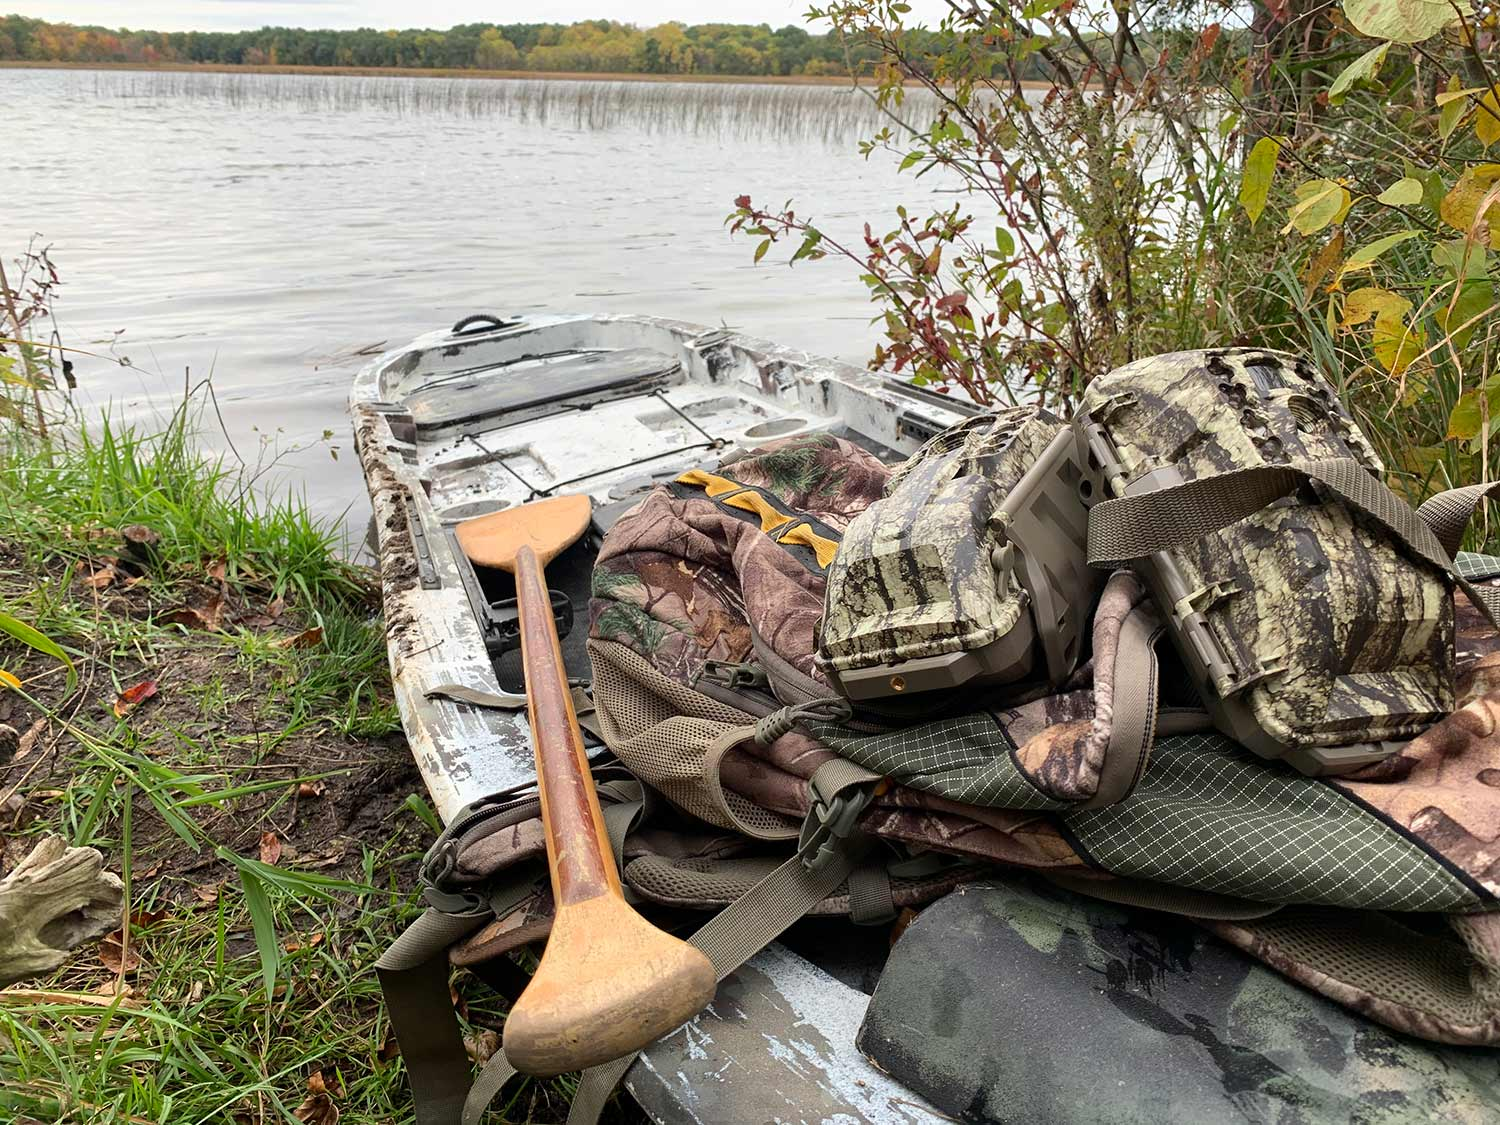 a fishing kayak filled with hunting gear